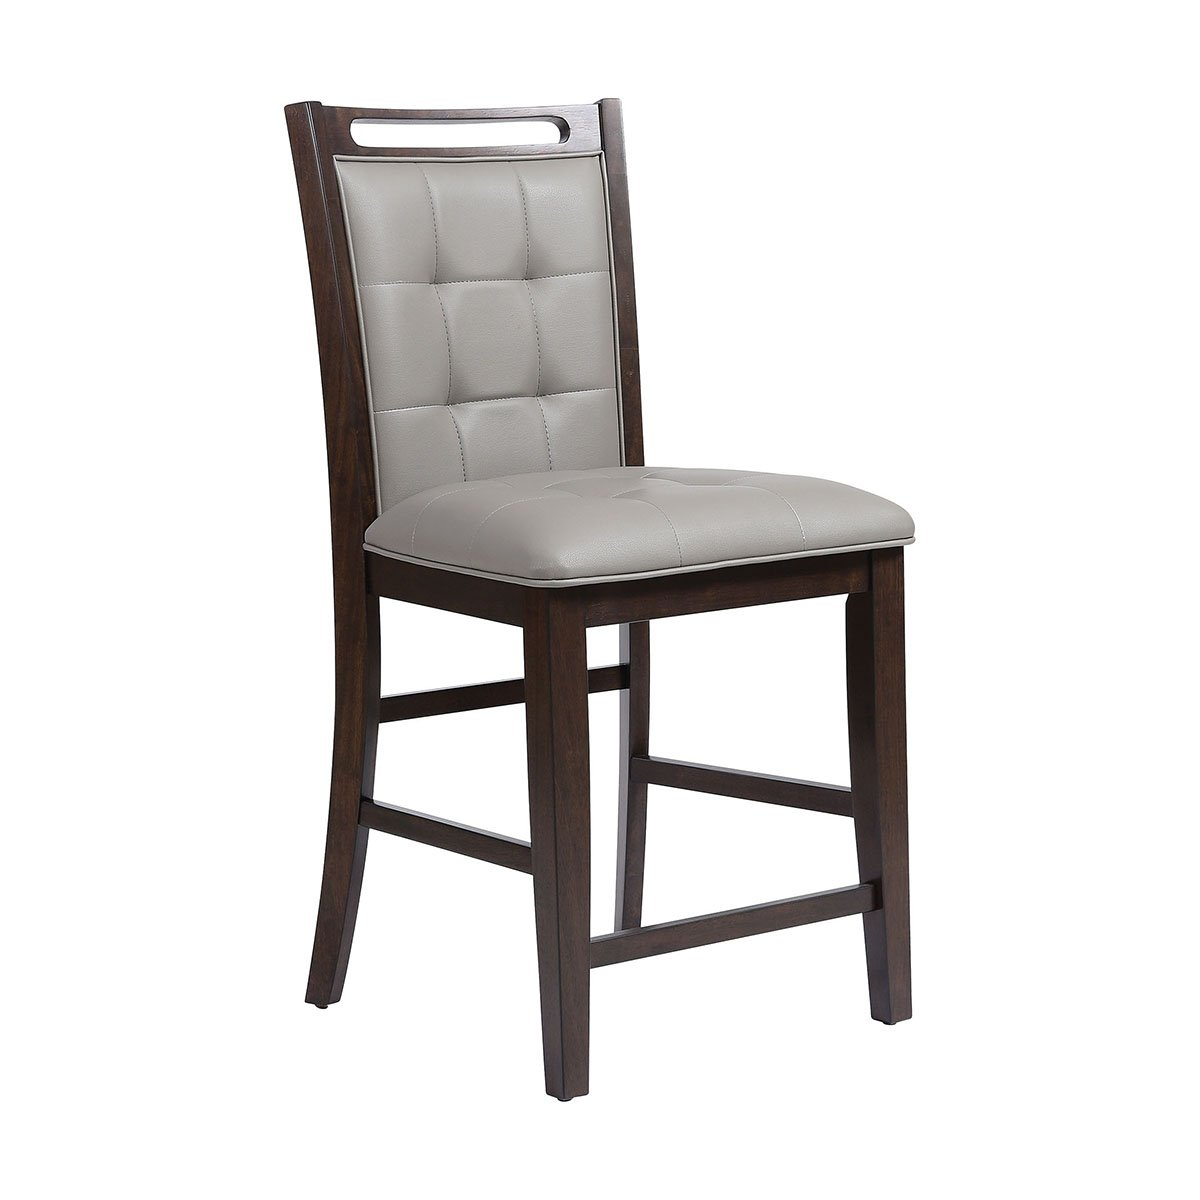 Stein World Upholstered Armless Chair in Gray